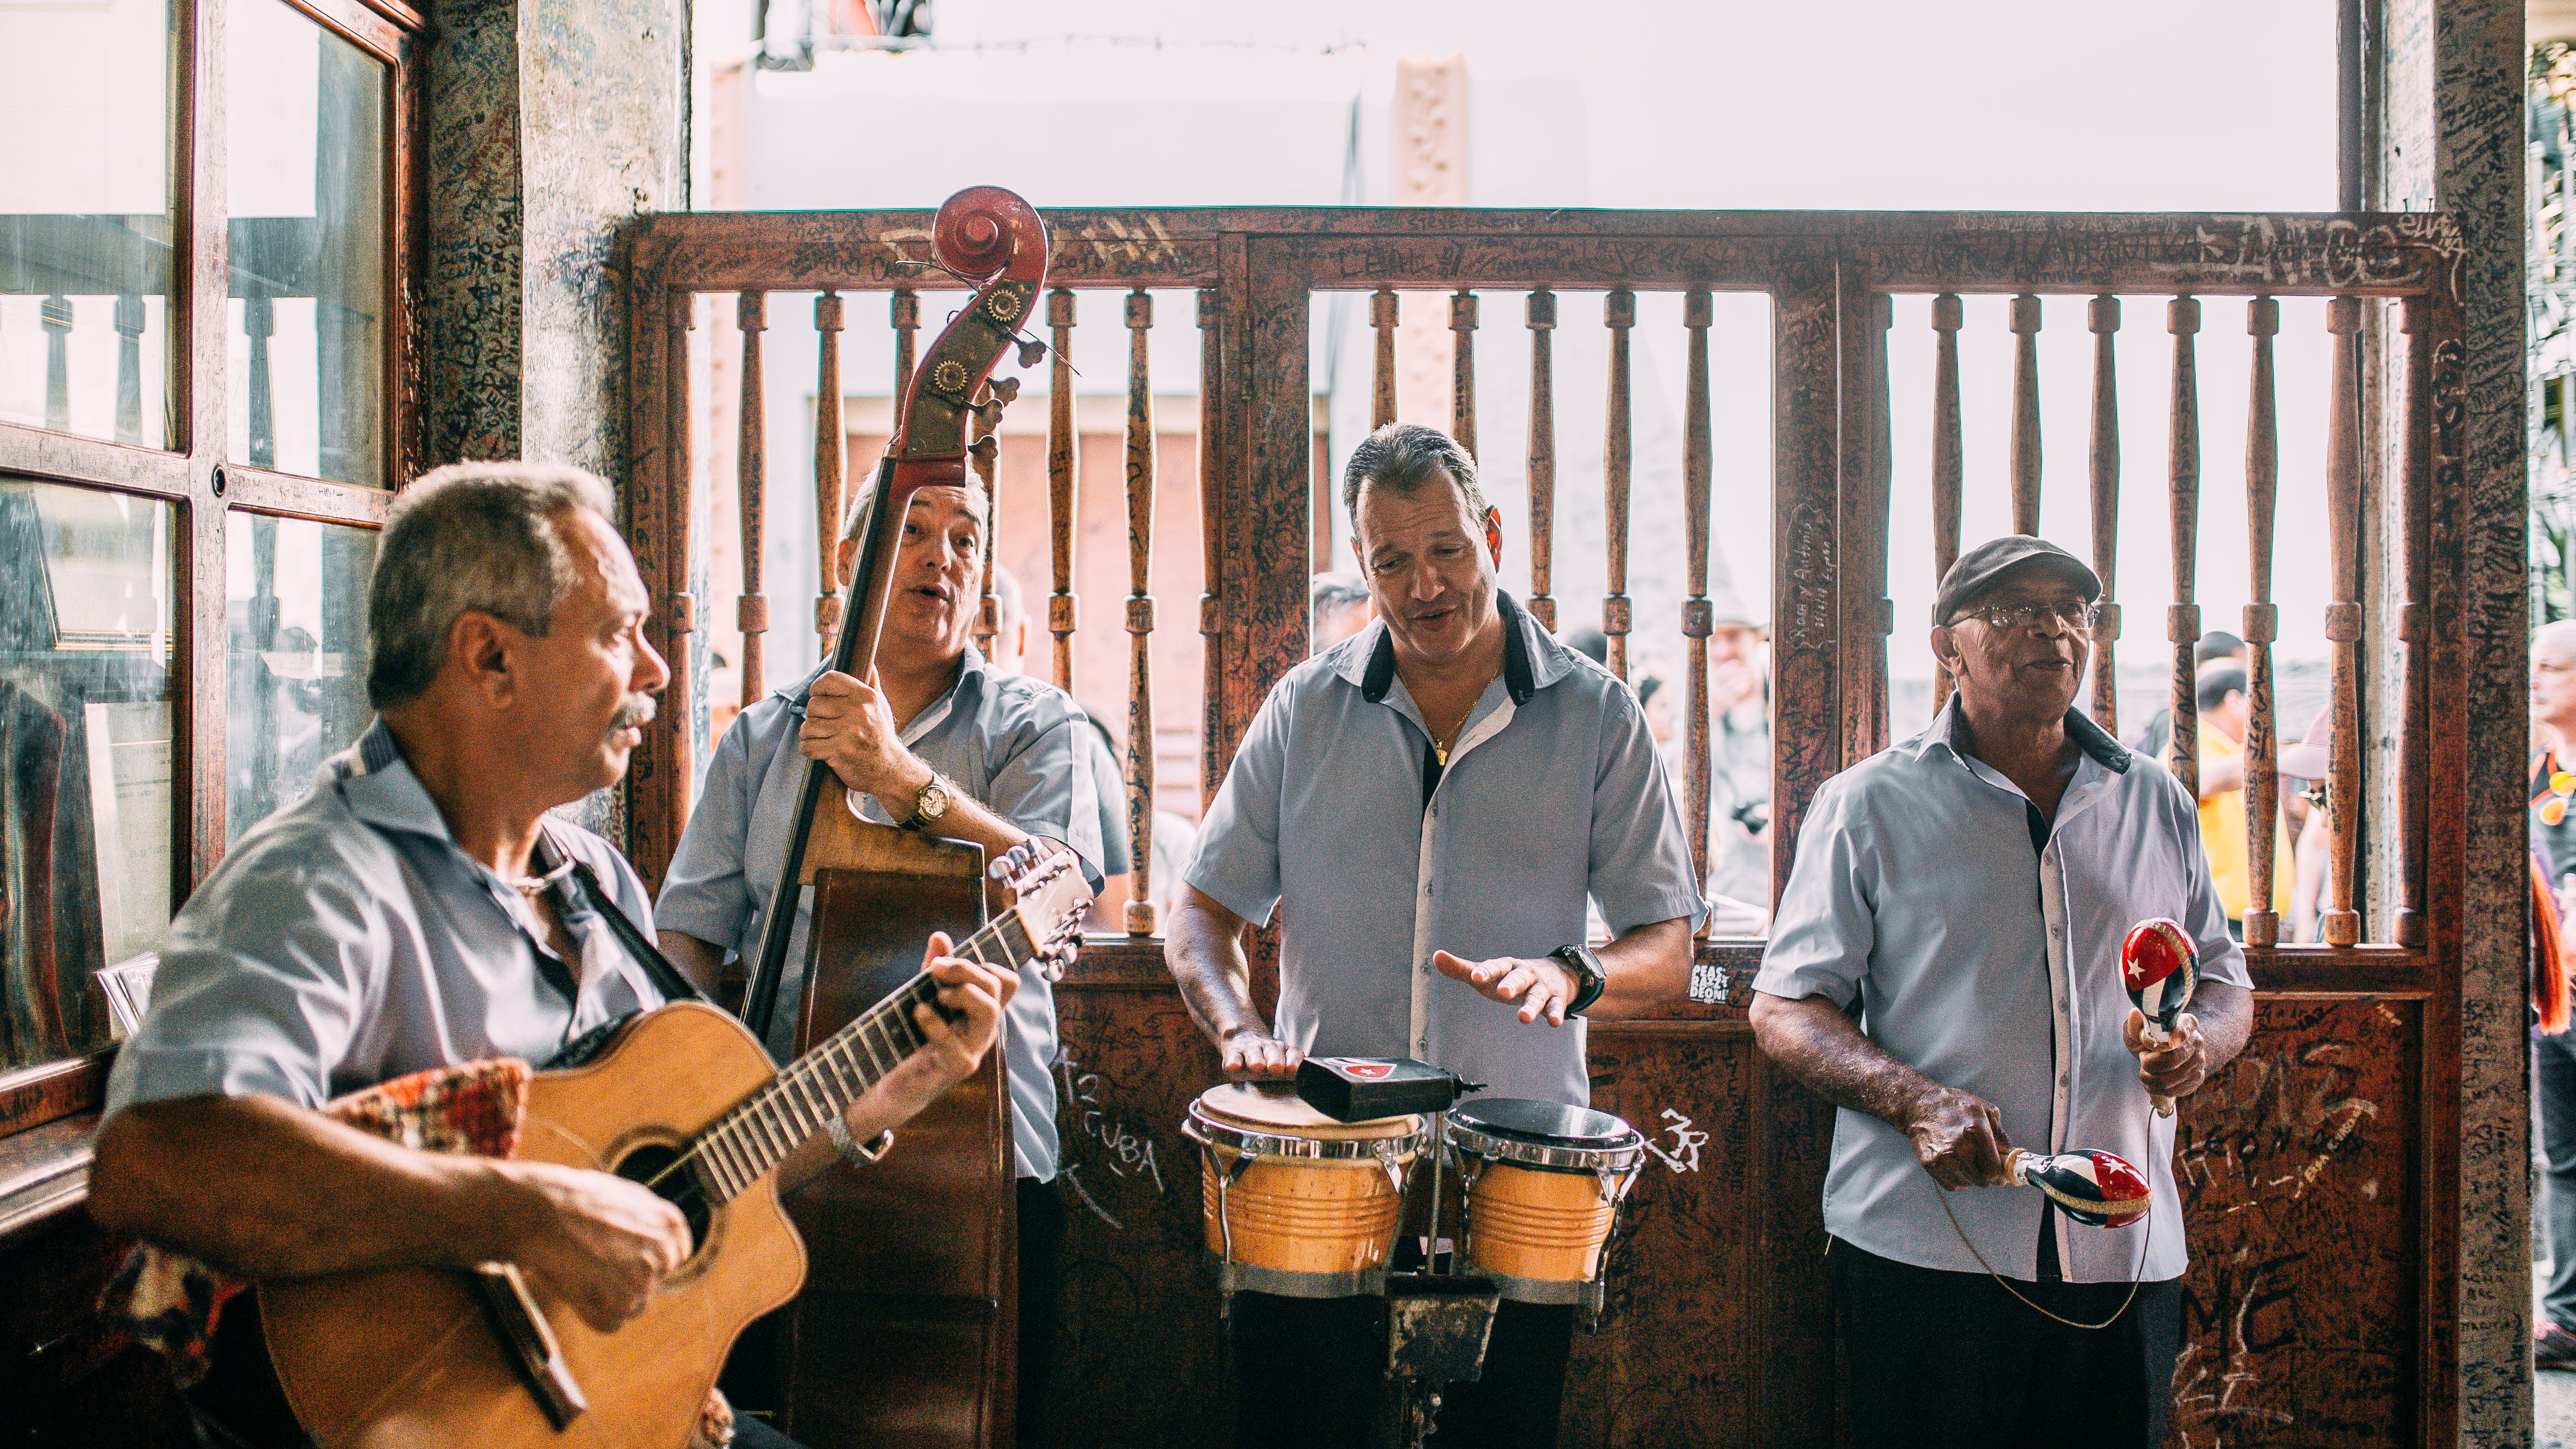 Group of Men Playing Instruments